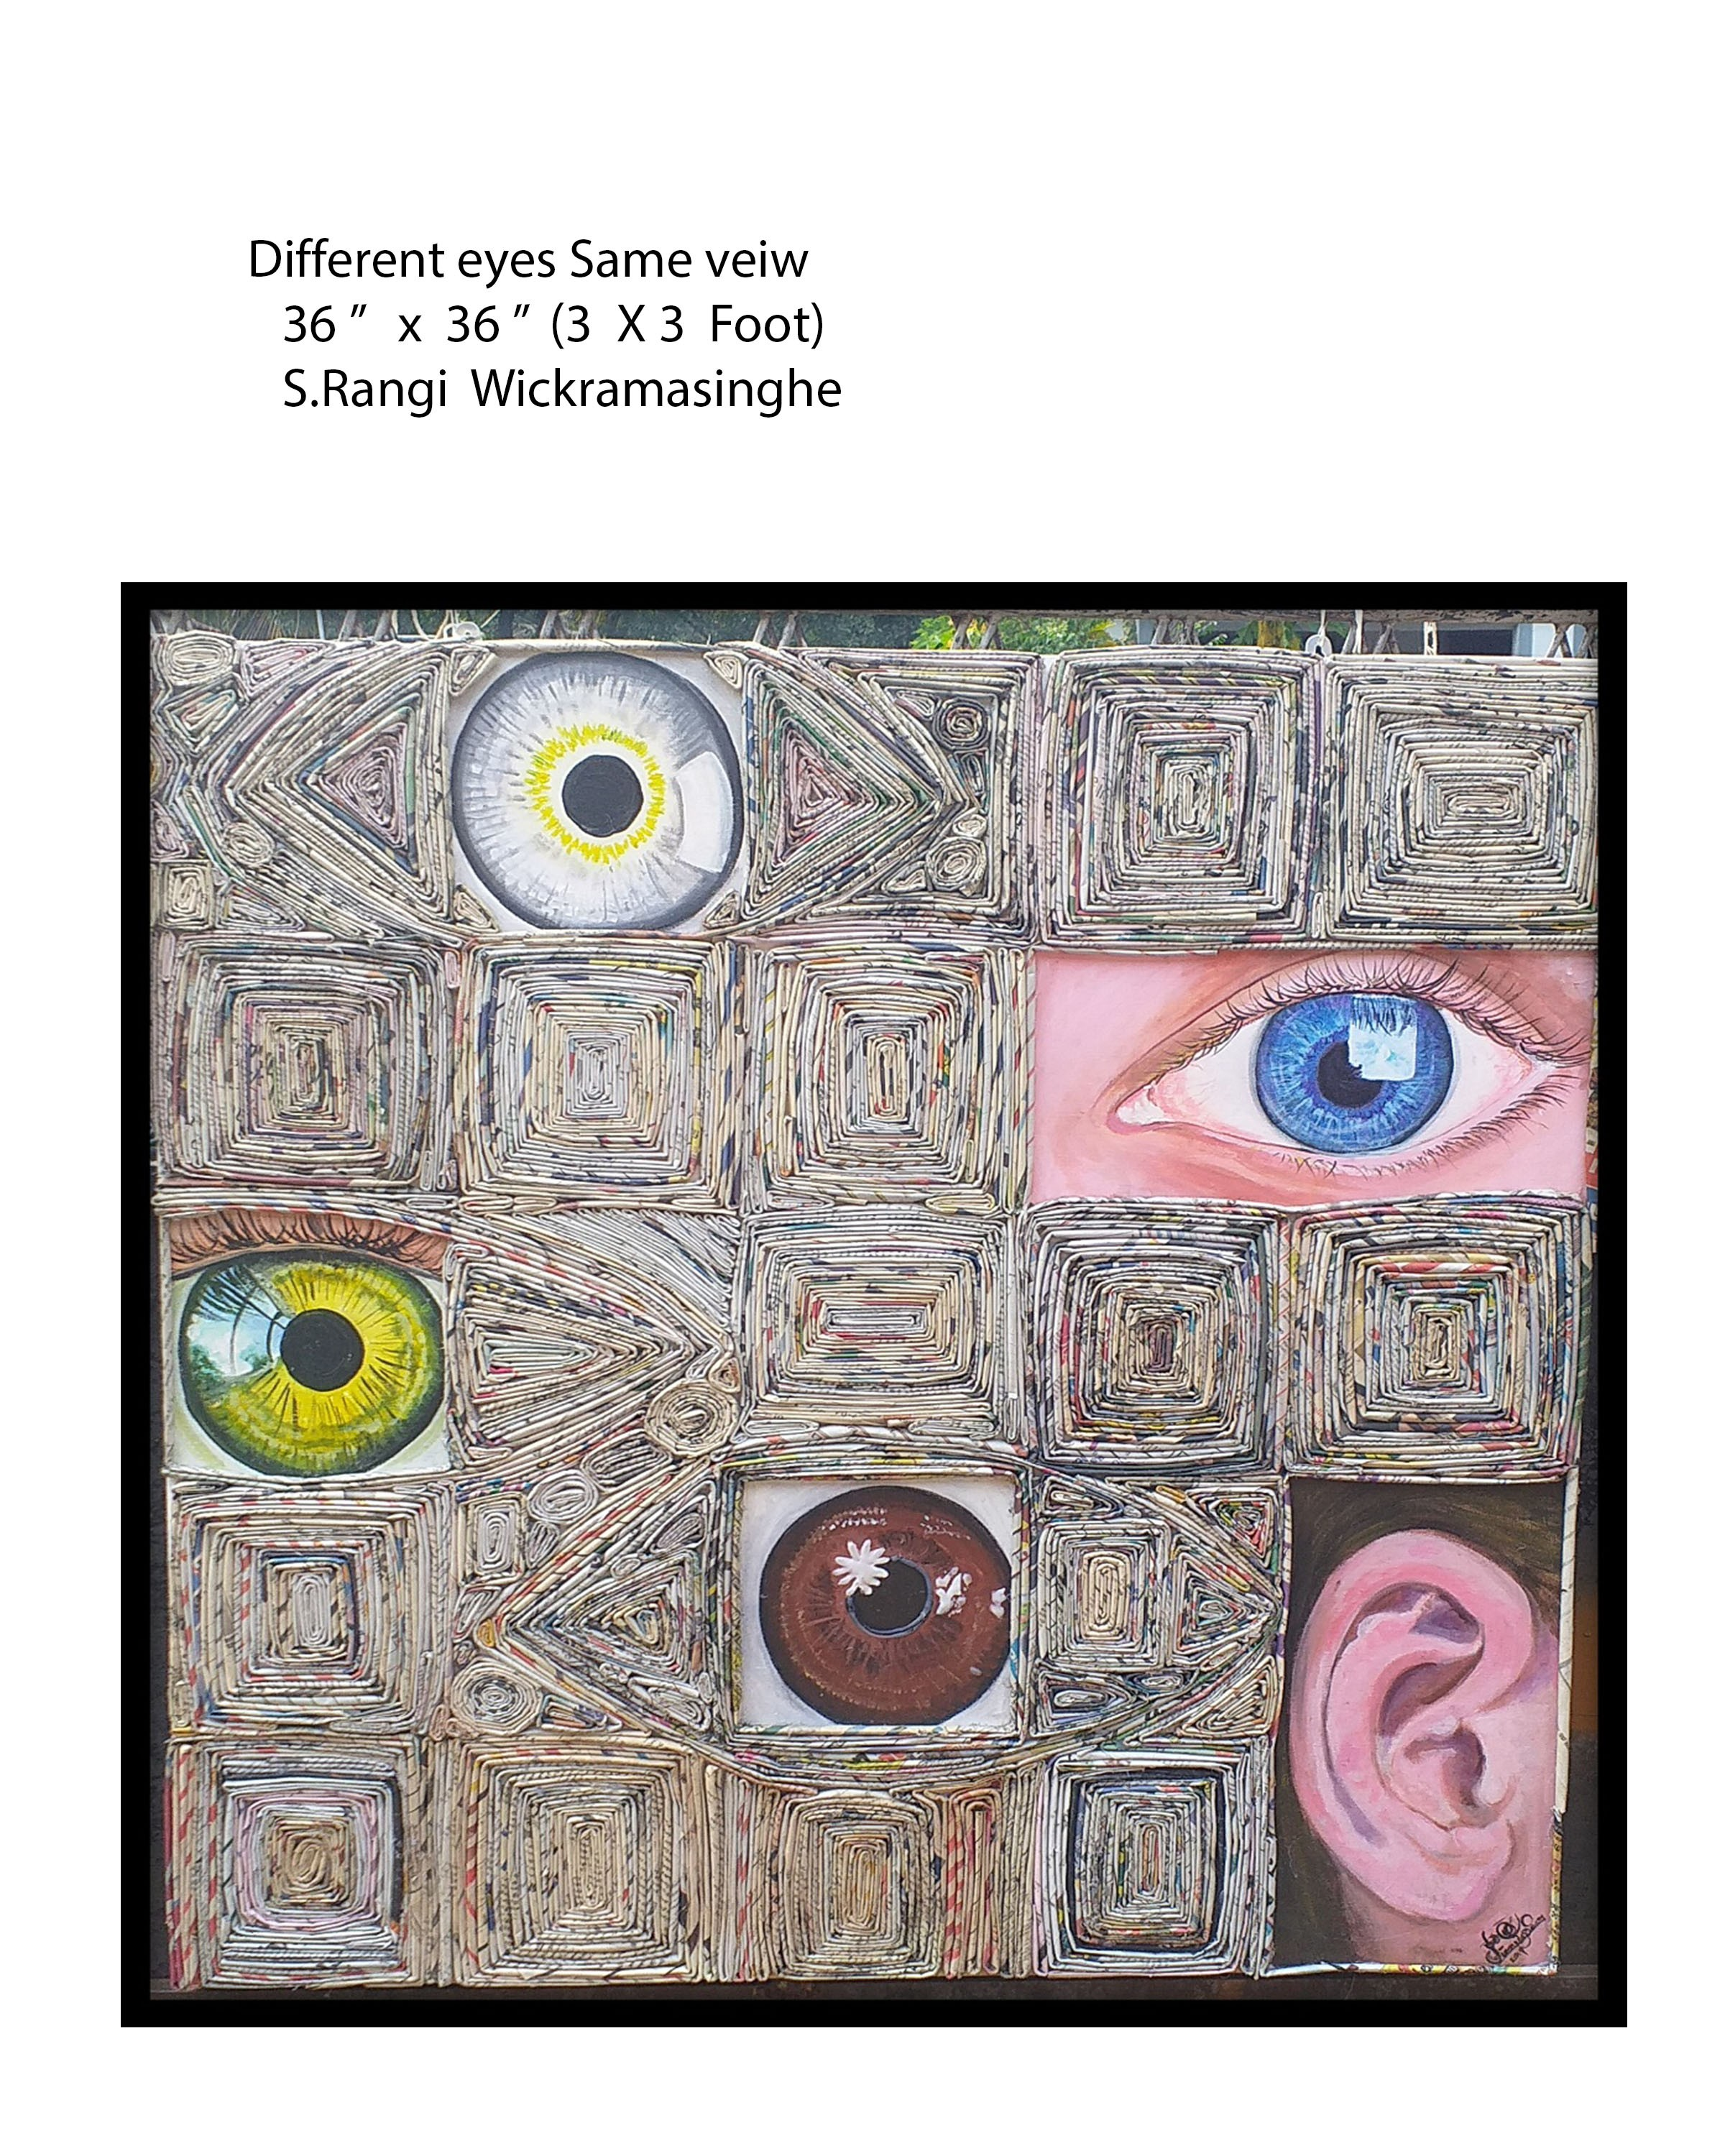 Different eyes Same view by Shamali Wickramasinghe